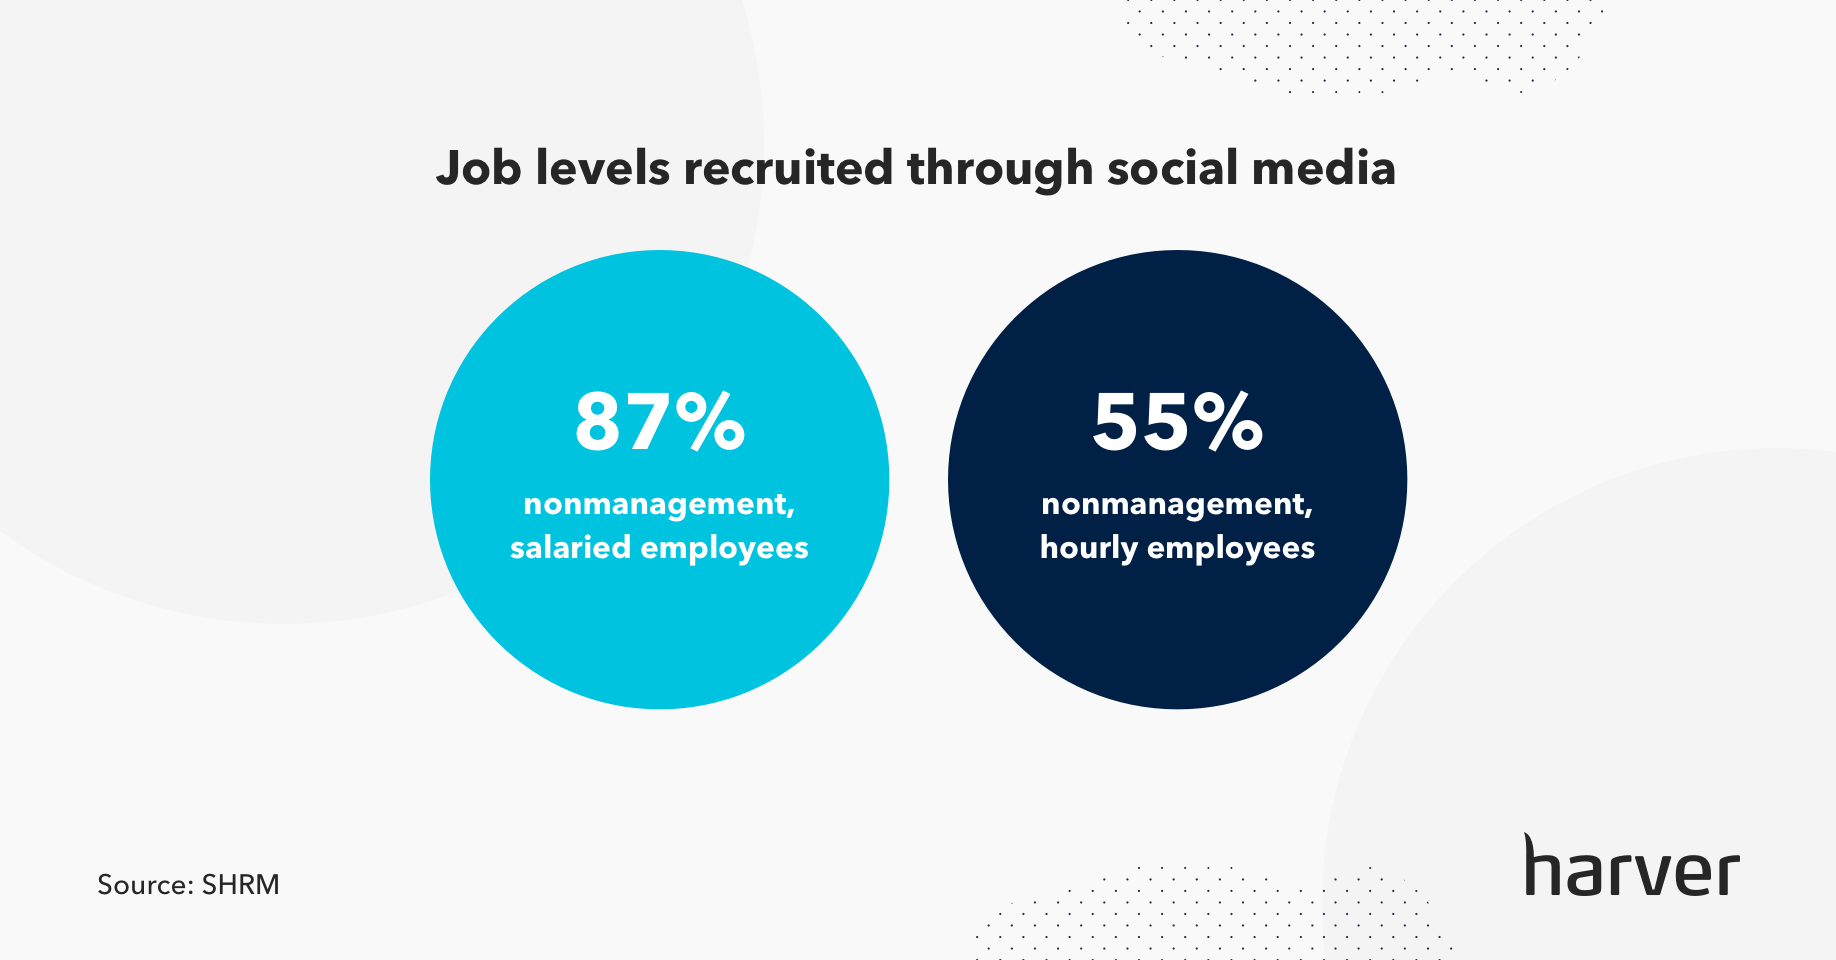 Social media recruitment for different levels